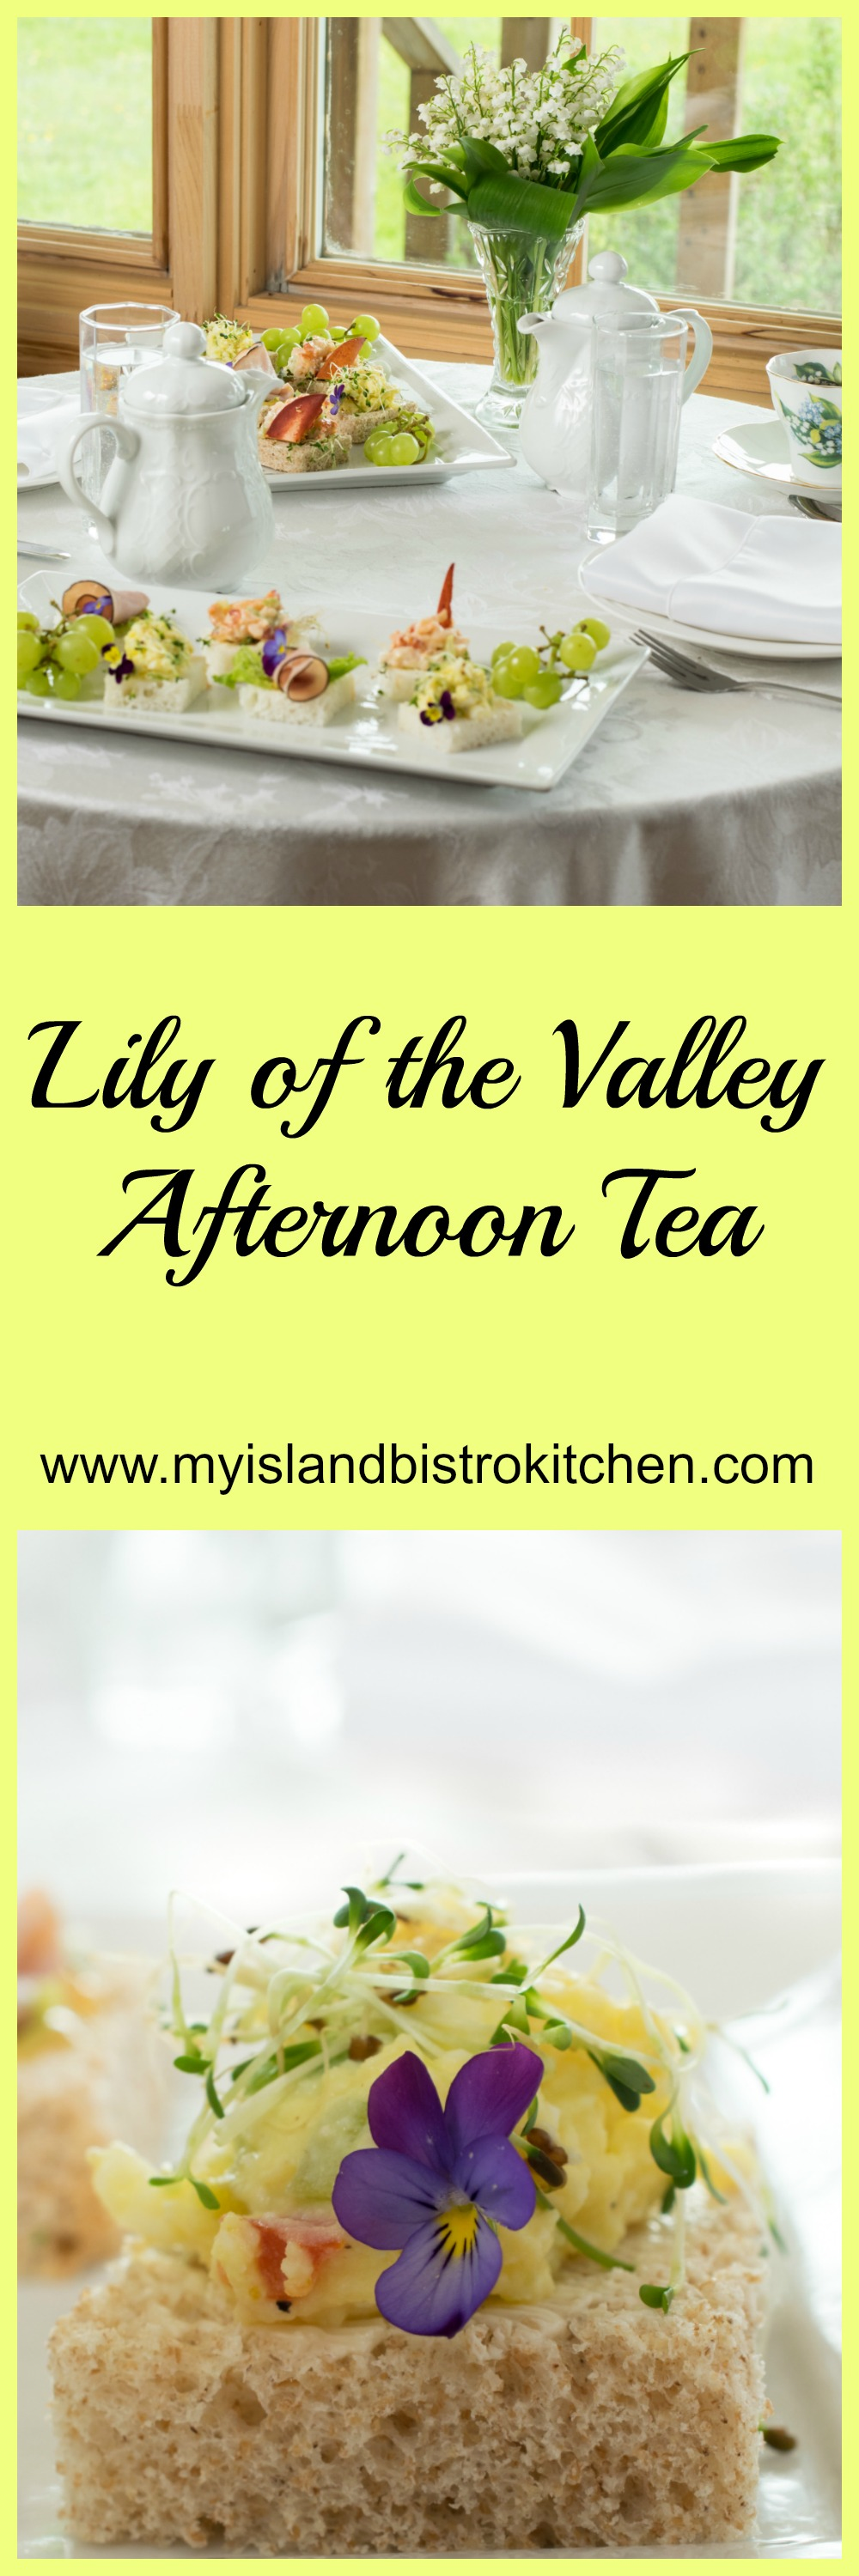 Lily of the Valley Themed Afternoon Tea